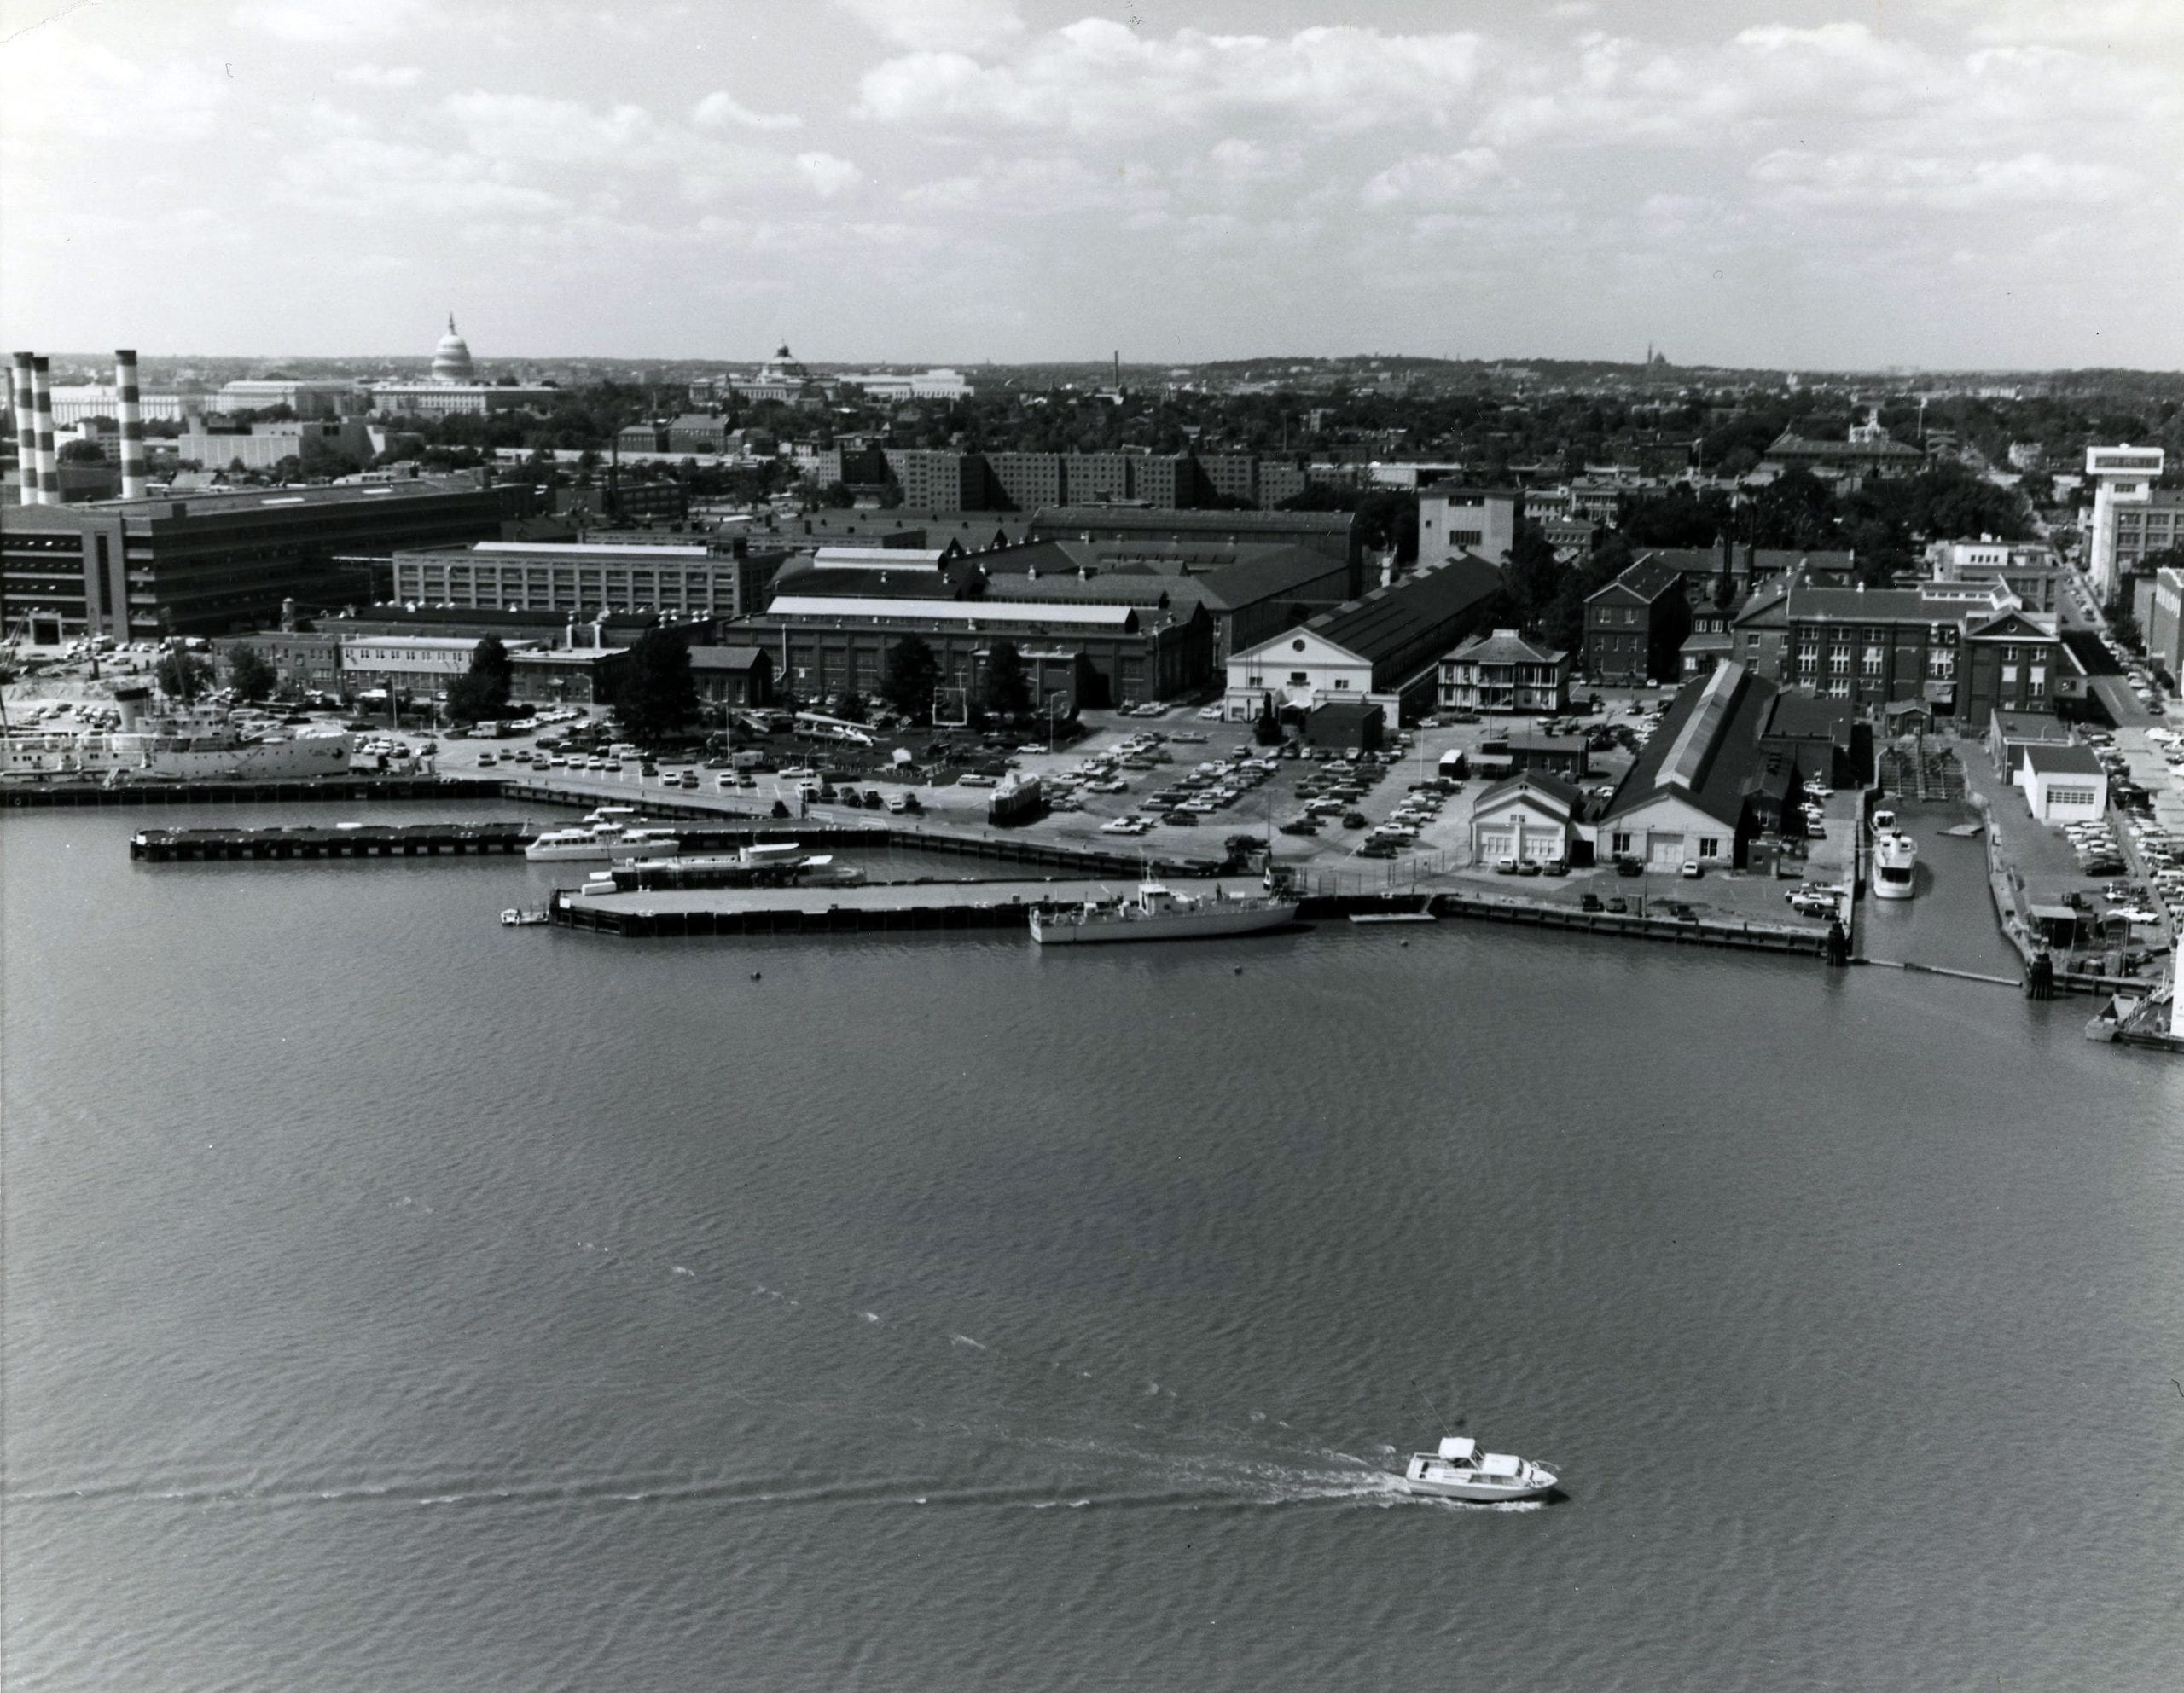 428-GX-KN-79297: Aerial view of the Washington Navy Yard, Washington, D.C., with the Anacostia River in the foreground. Photographed by PHC Tommy Cobb, March 1970. NHHC Photograph Collection, Navy Subject Files, Washington Navy Yard. (218).